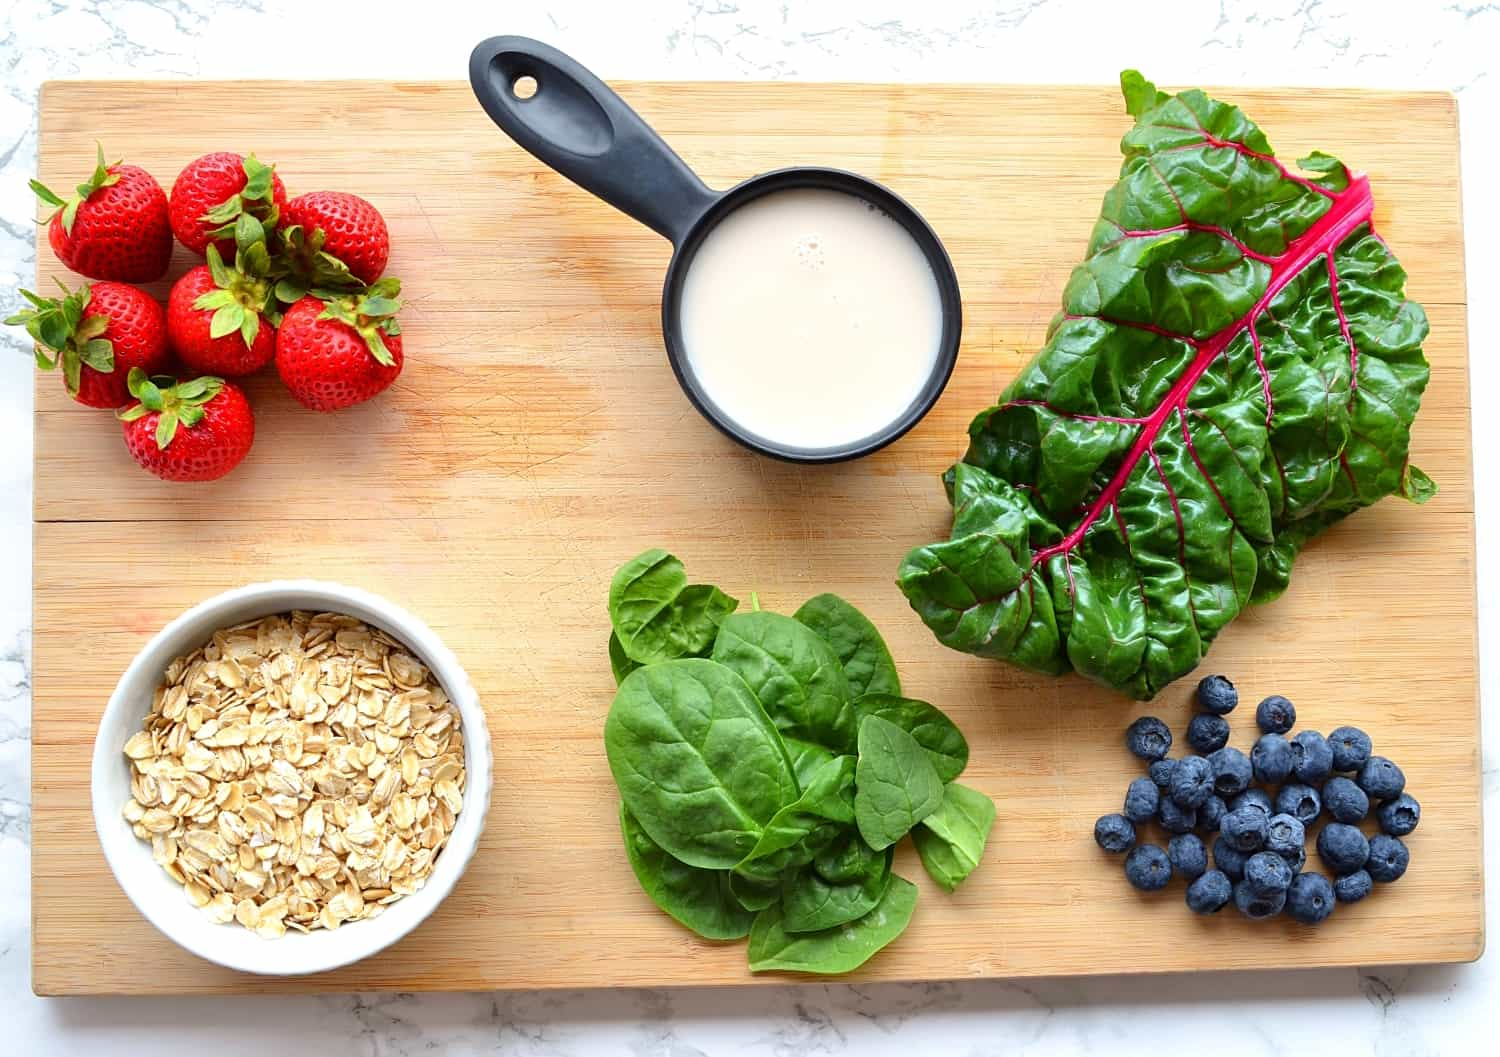 Spinach and blueberry smoothie ingredients